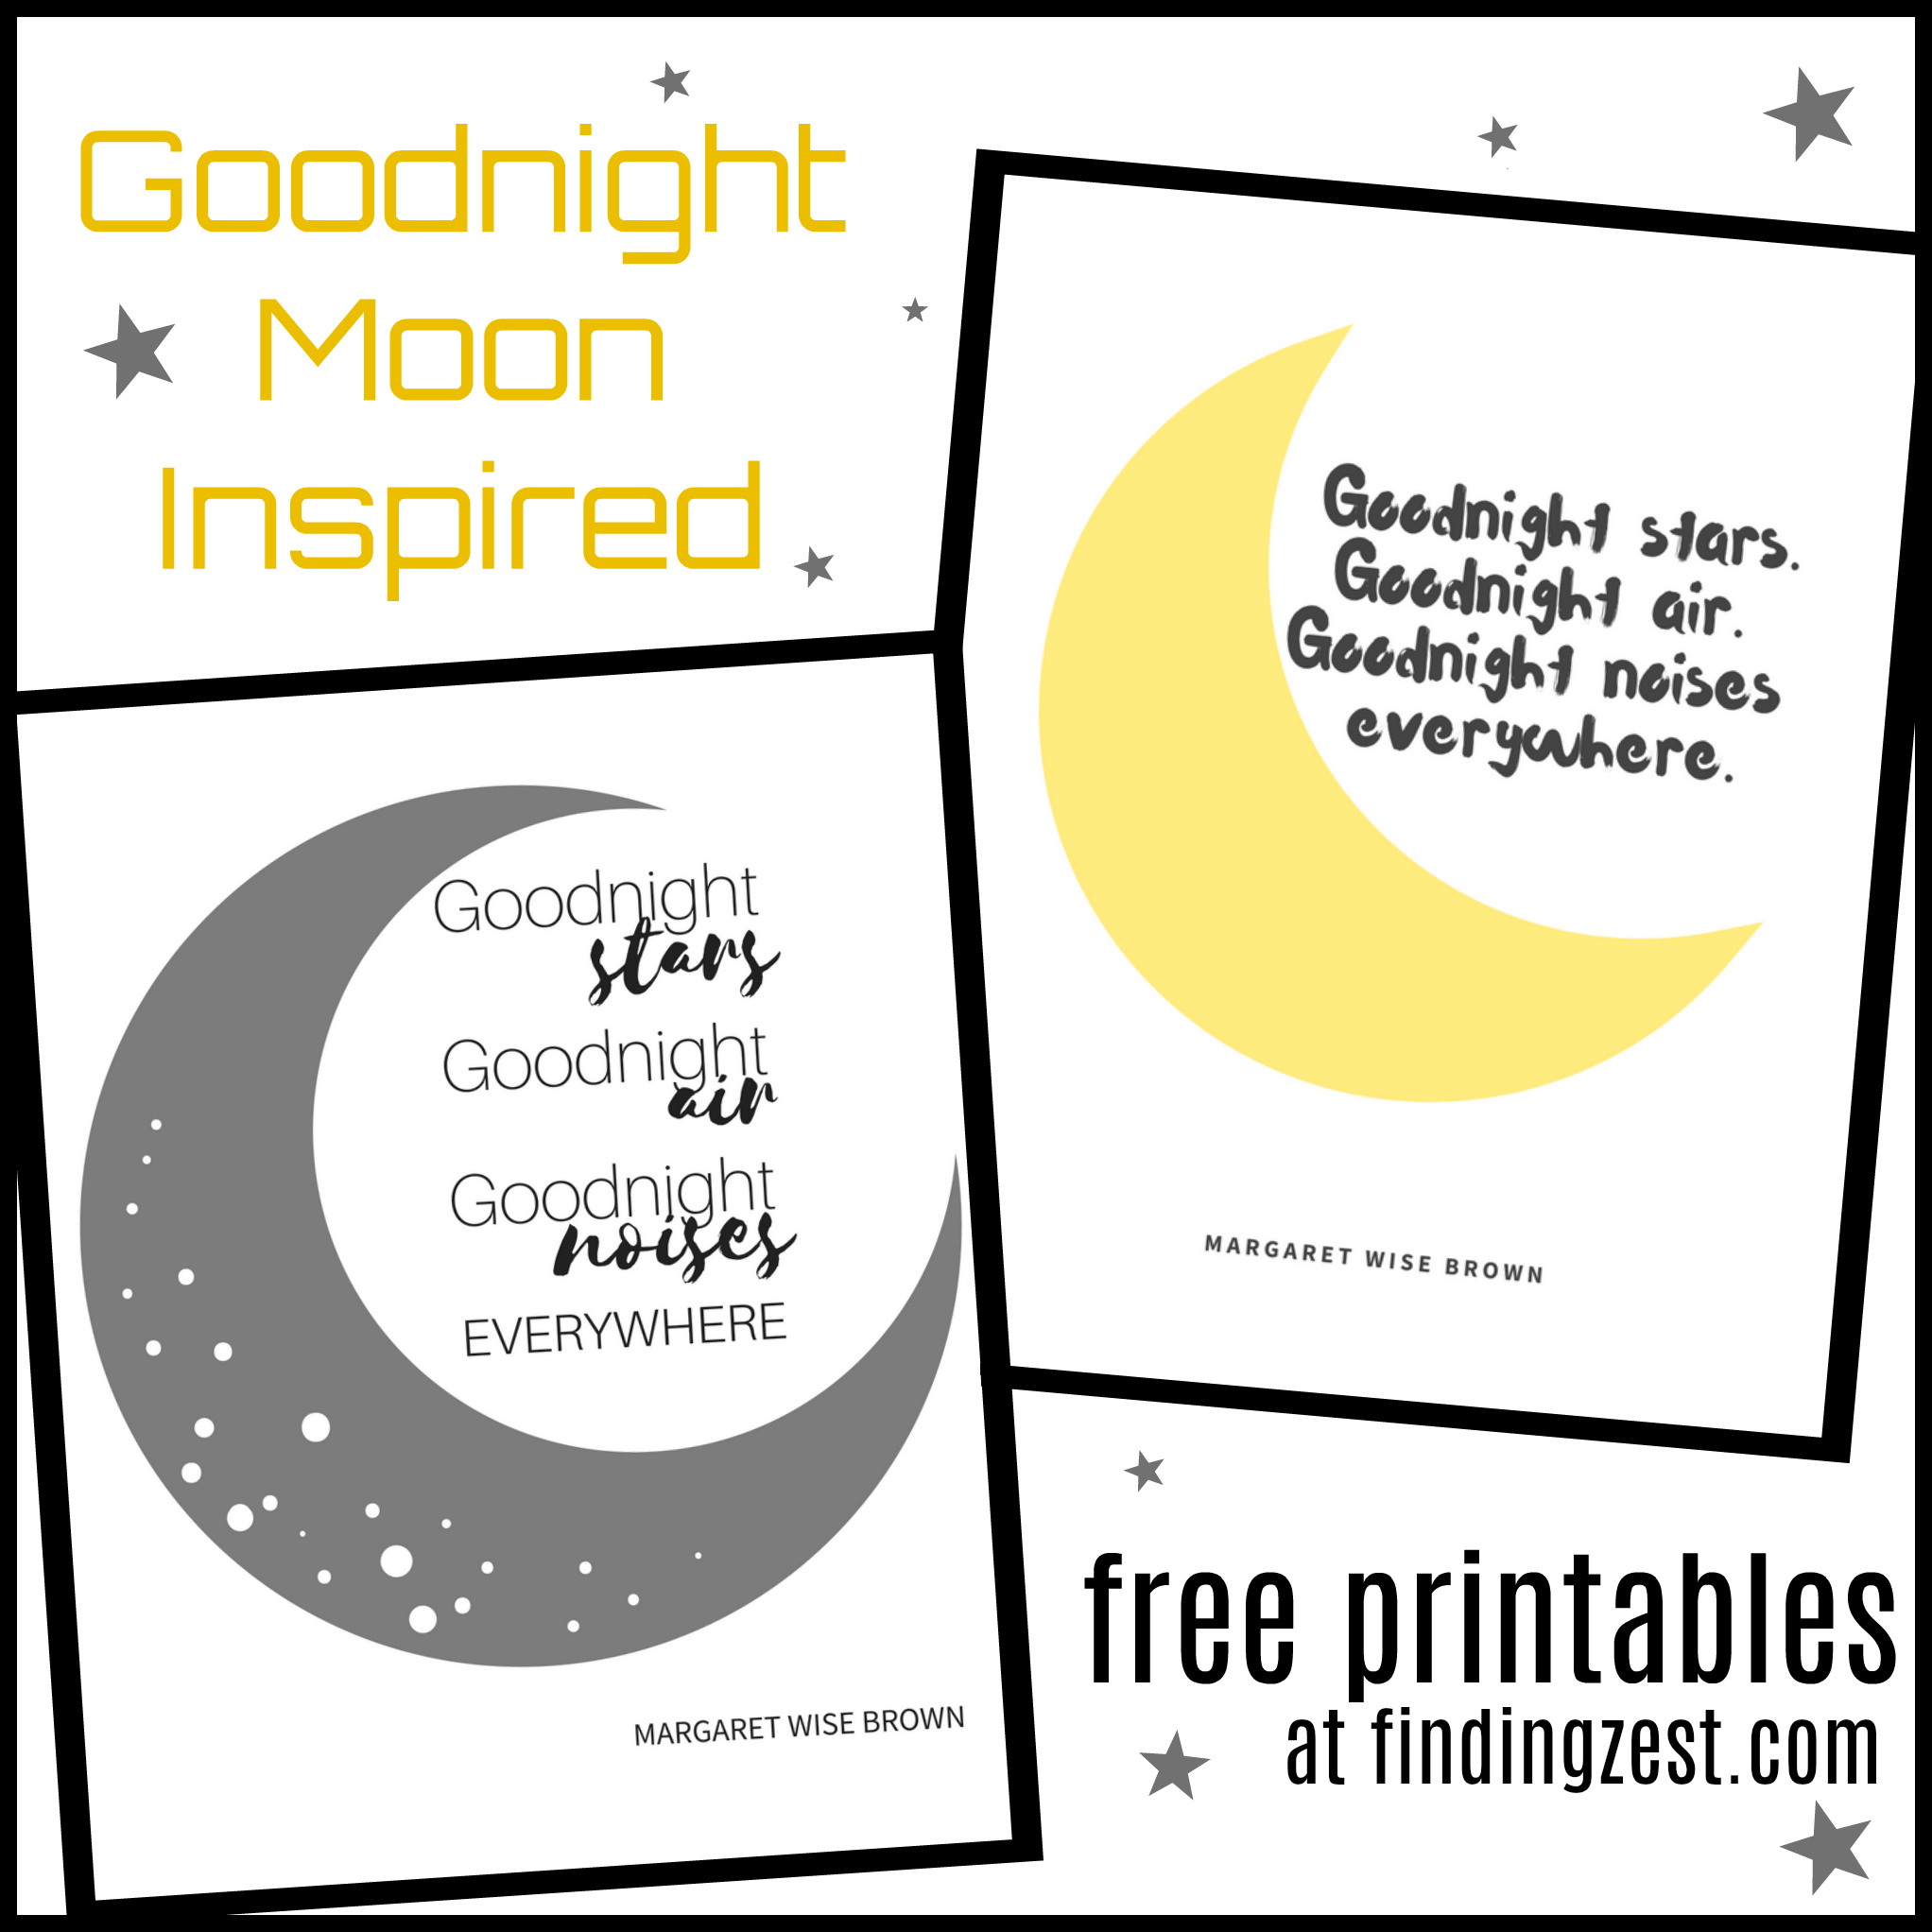 printable goodnight moon coloring pages - photo#37